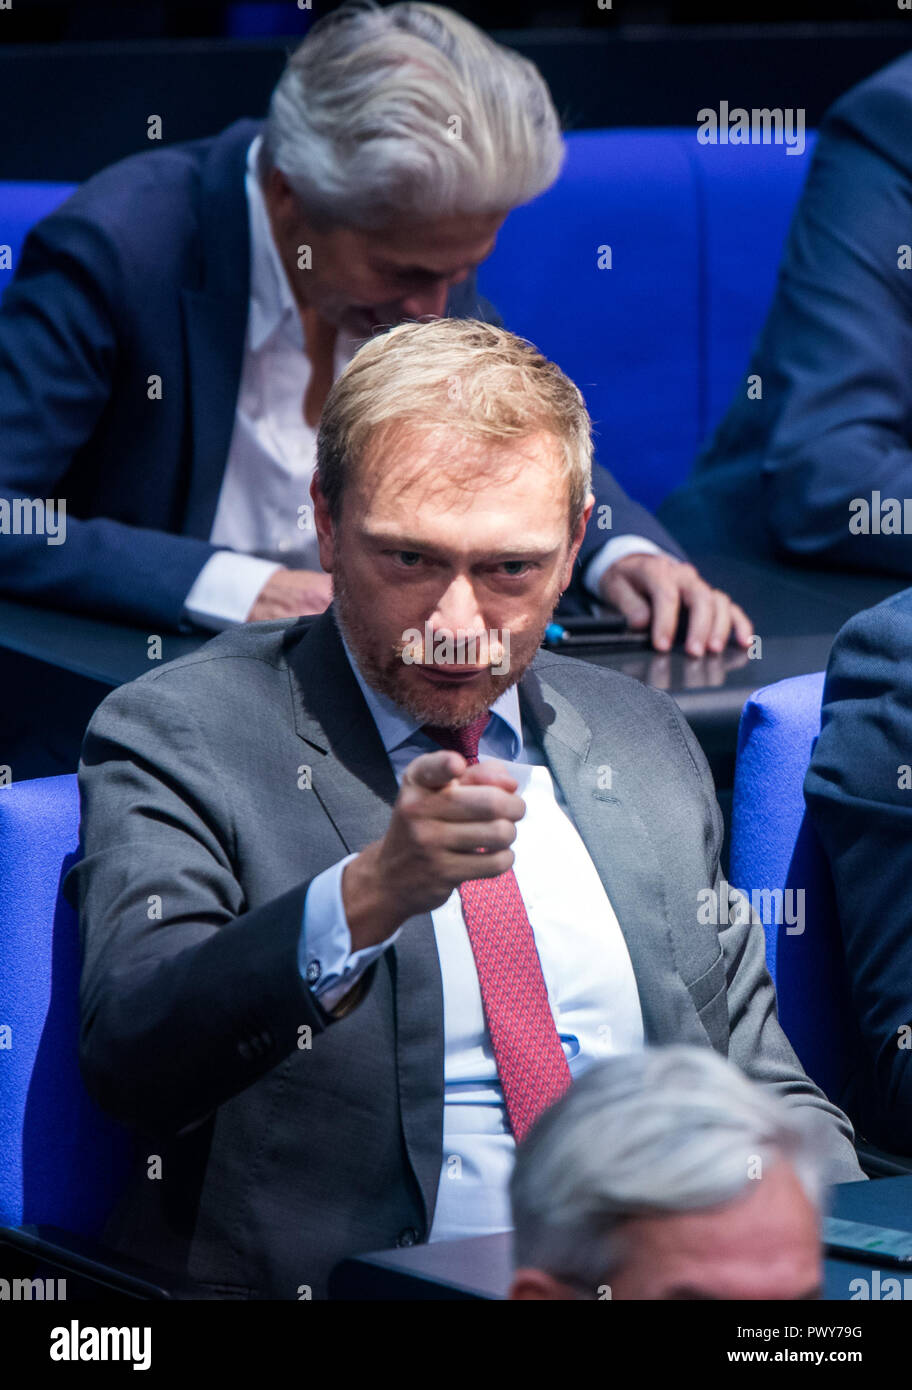 Berlin, Germany. 18th Oct, 2018. Christian Lindner, chairman of the FDP parliamentary group, sits in the Bundestag. Credit: Jens Büttner/dpa-Zentralbild/dpa/Alamy Live News - Stock Image